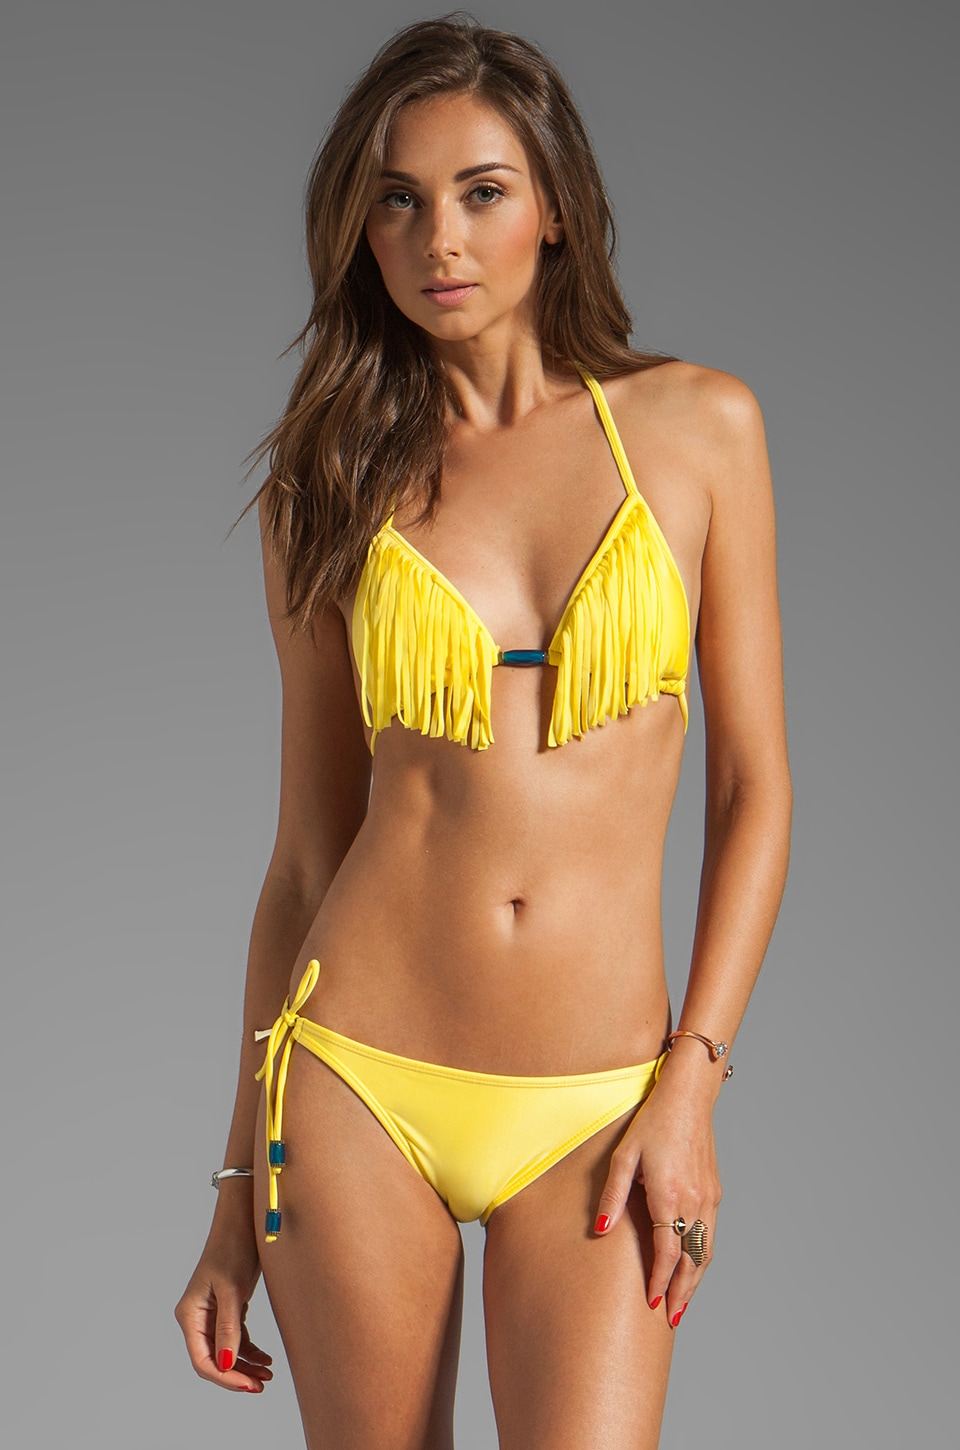 Vix Swimwear Sierra Tri Top in Yellow